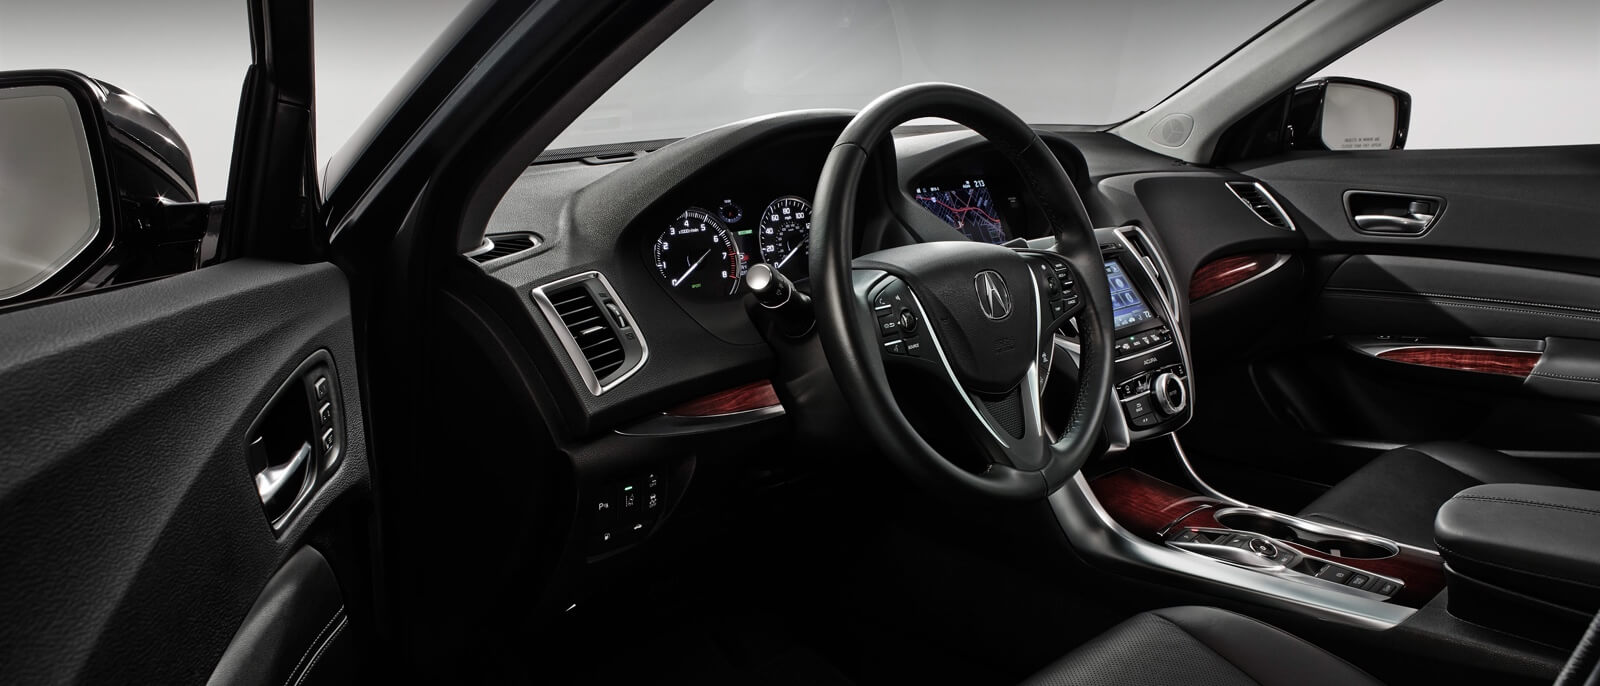 2016 Acura TLX front interior